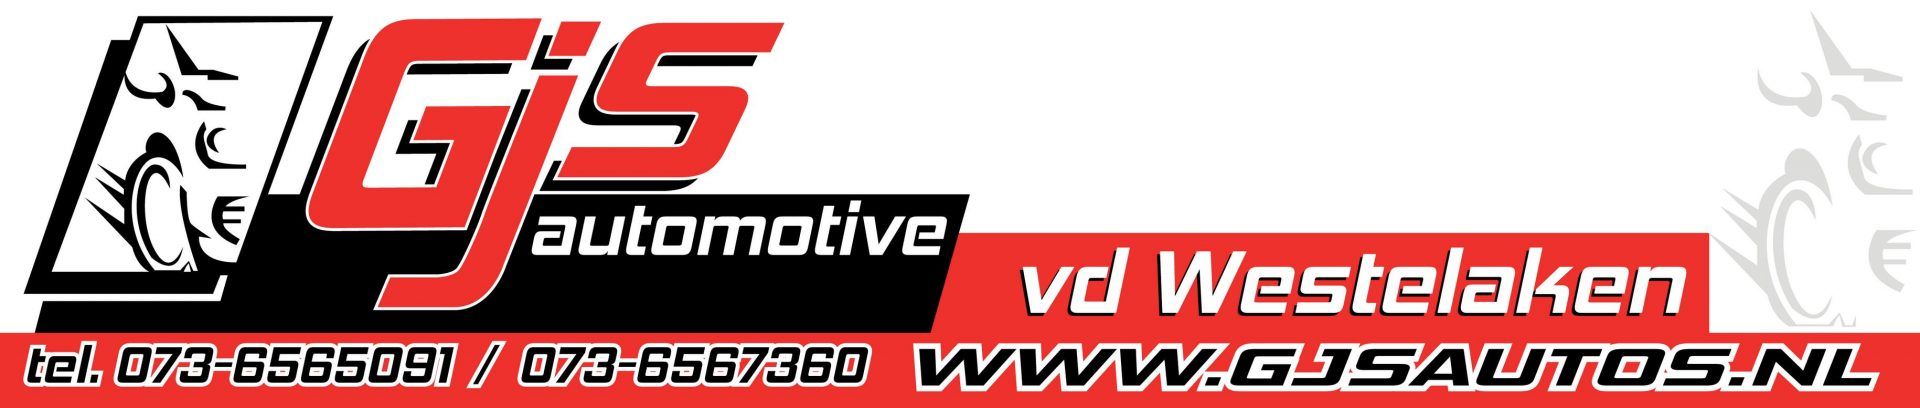 GJS Automotive vd Westelaken